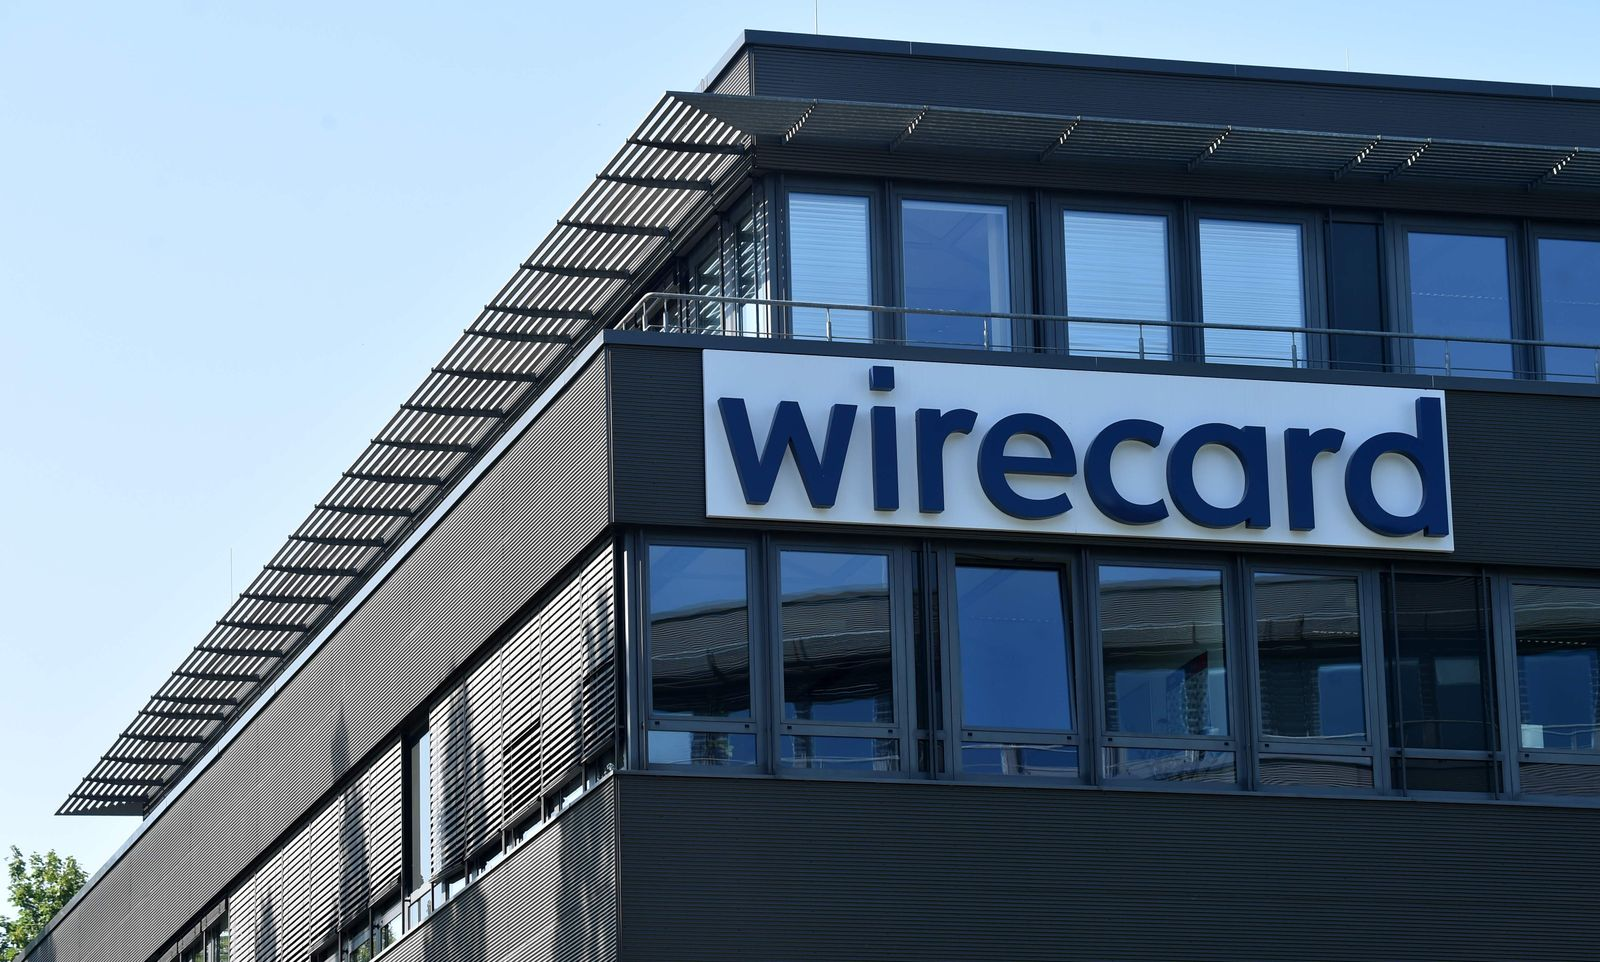 FILES-GERMANY-FINANCE-FRAUD-WIRECARD